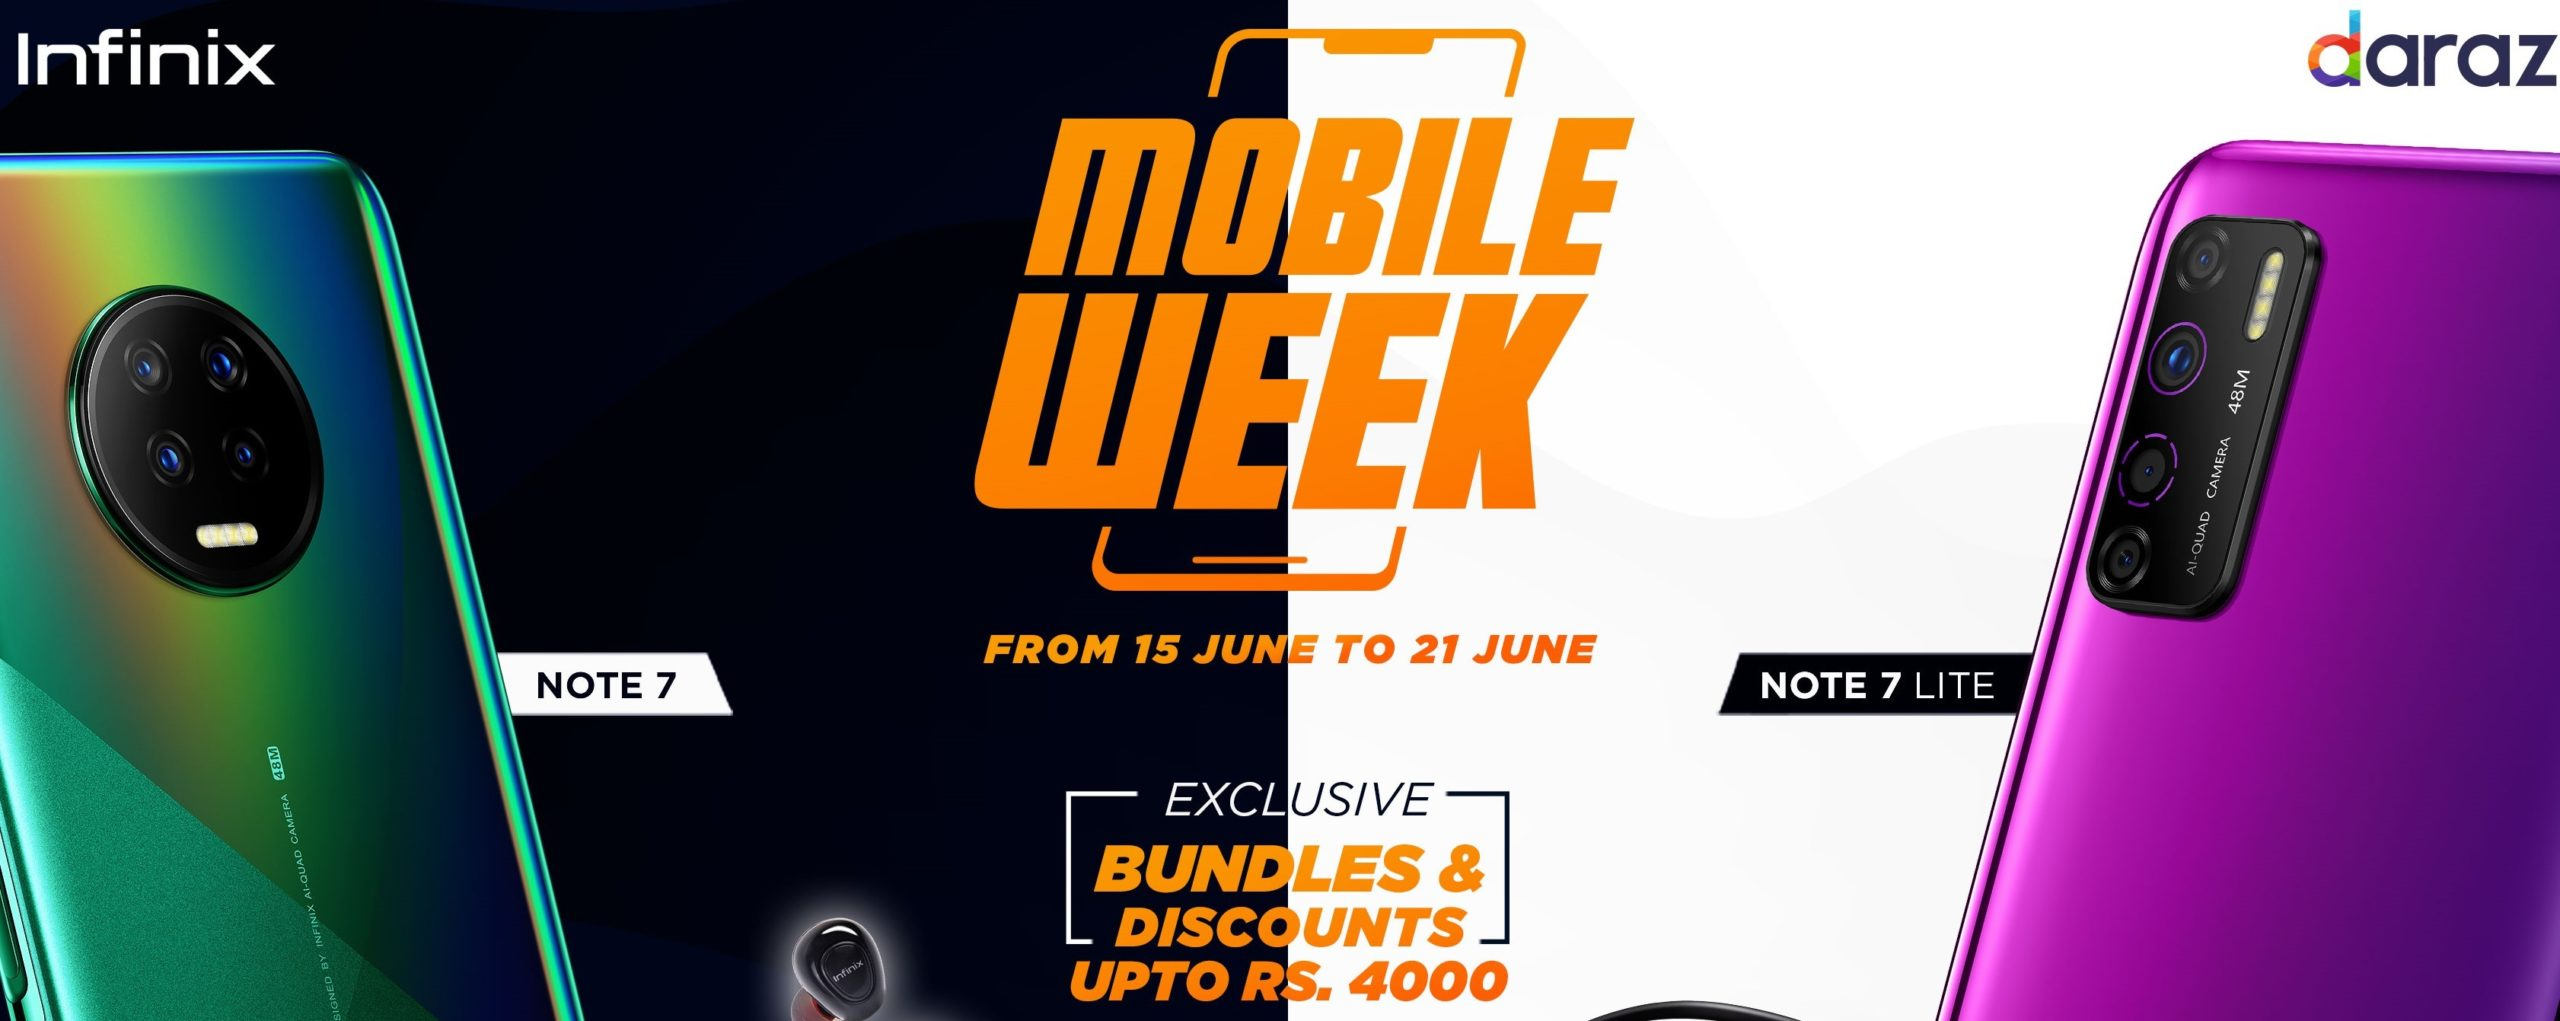 Infinix-Daraz Mobile Week